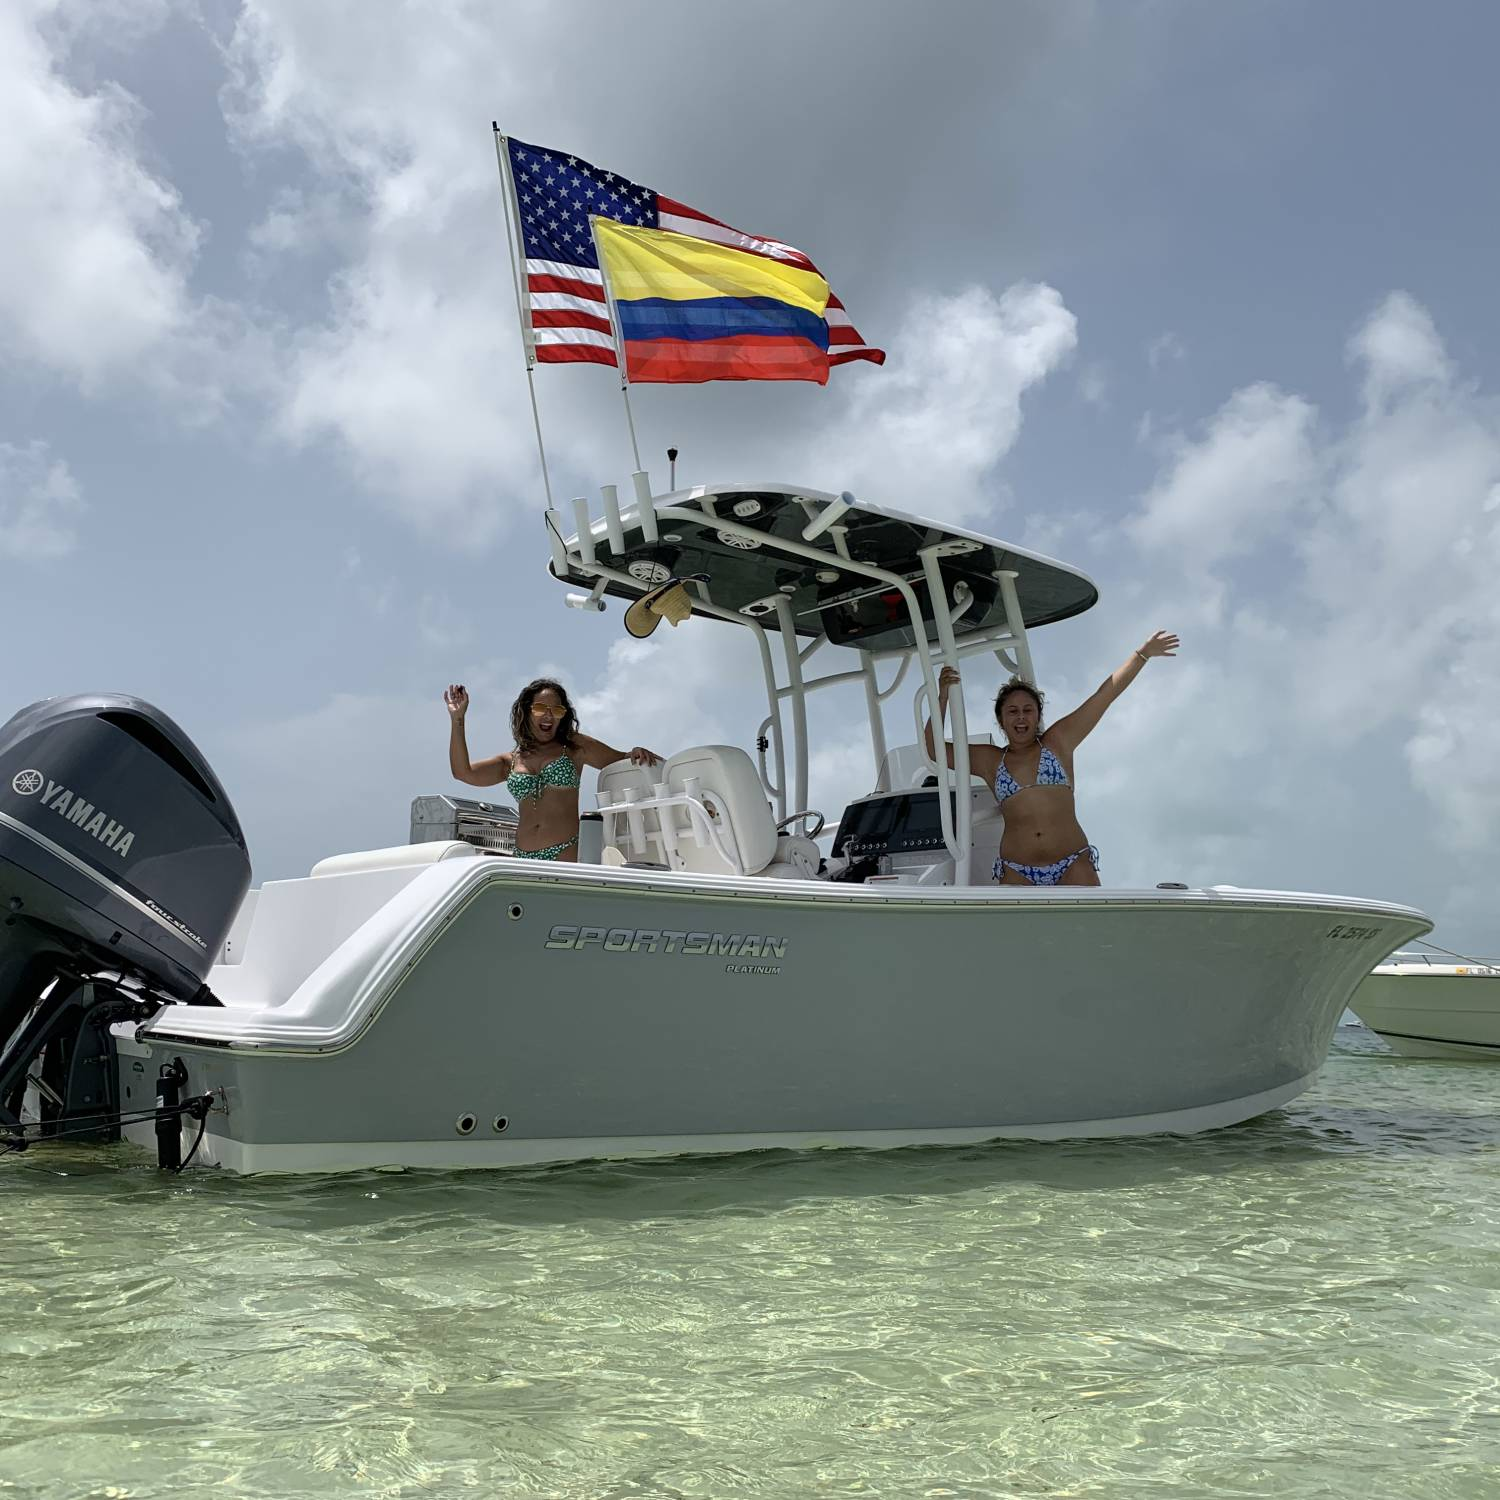 Hanging with the family at the sand bar. We own a 2020 232, it's roomy for the family, tough boat....